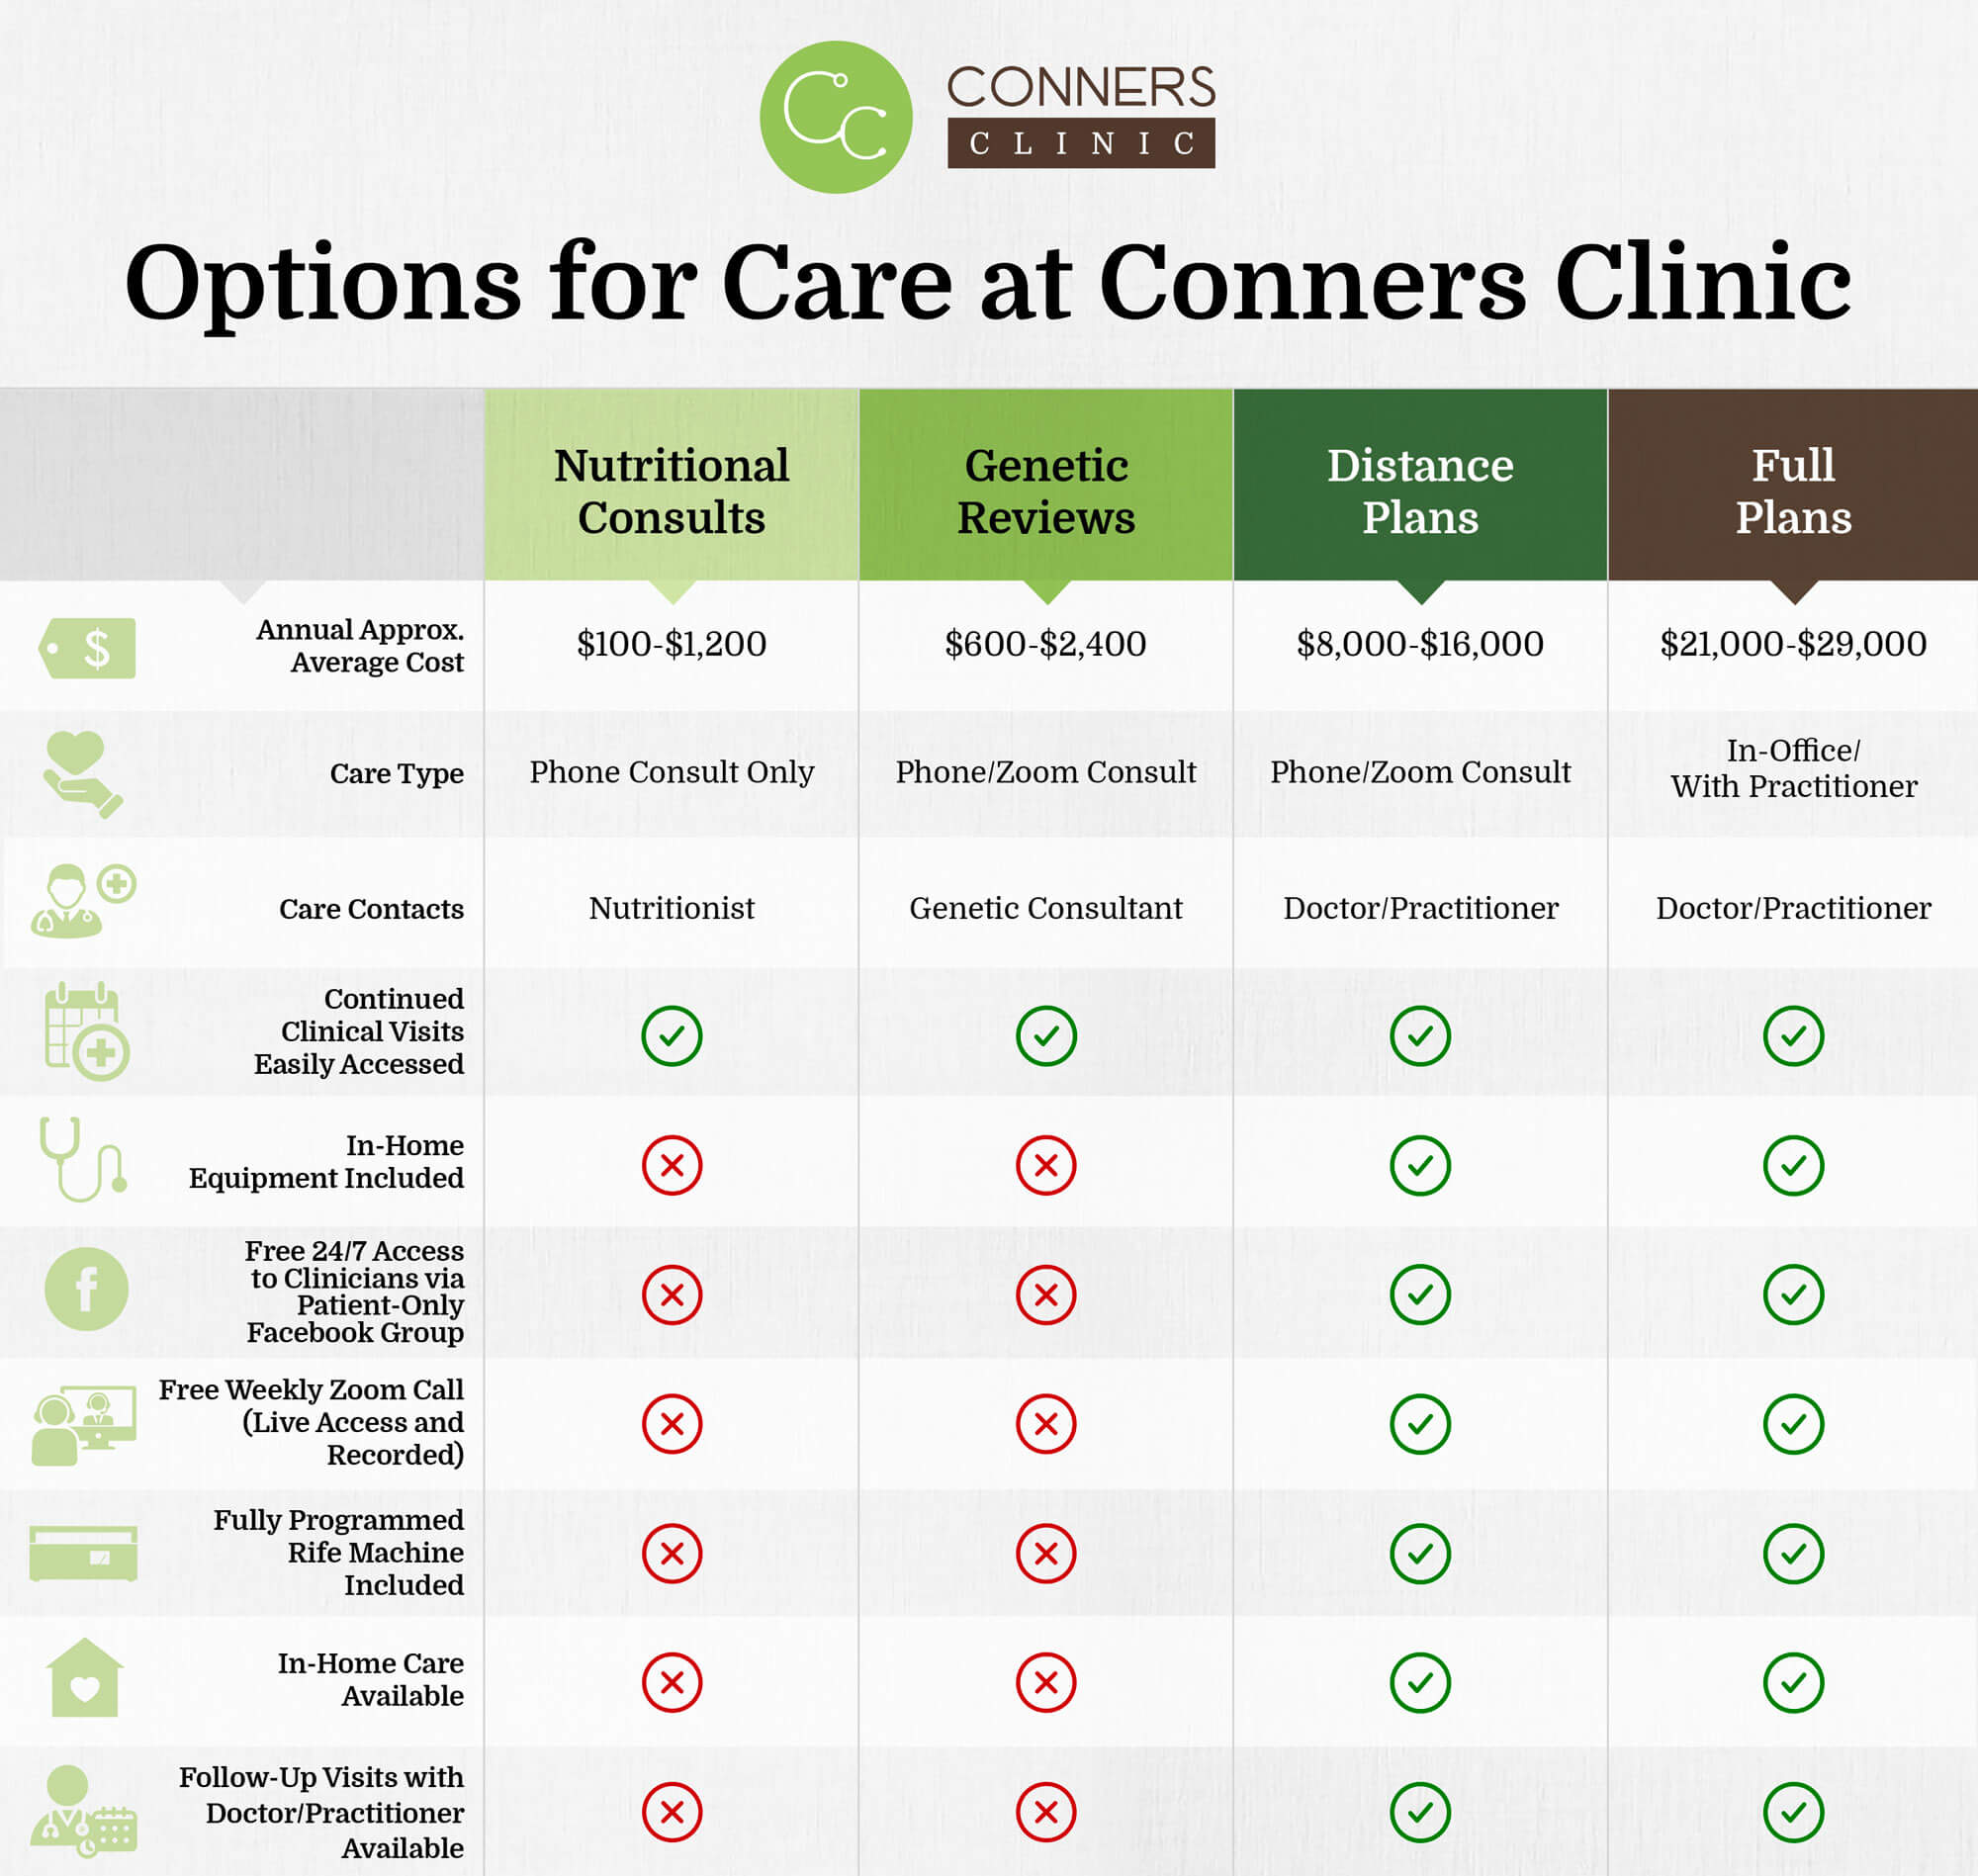 Conners-Clinic-Options-for-Care